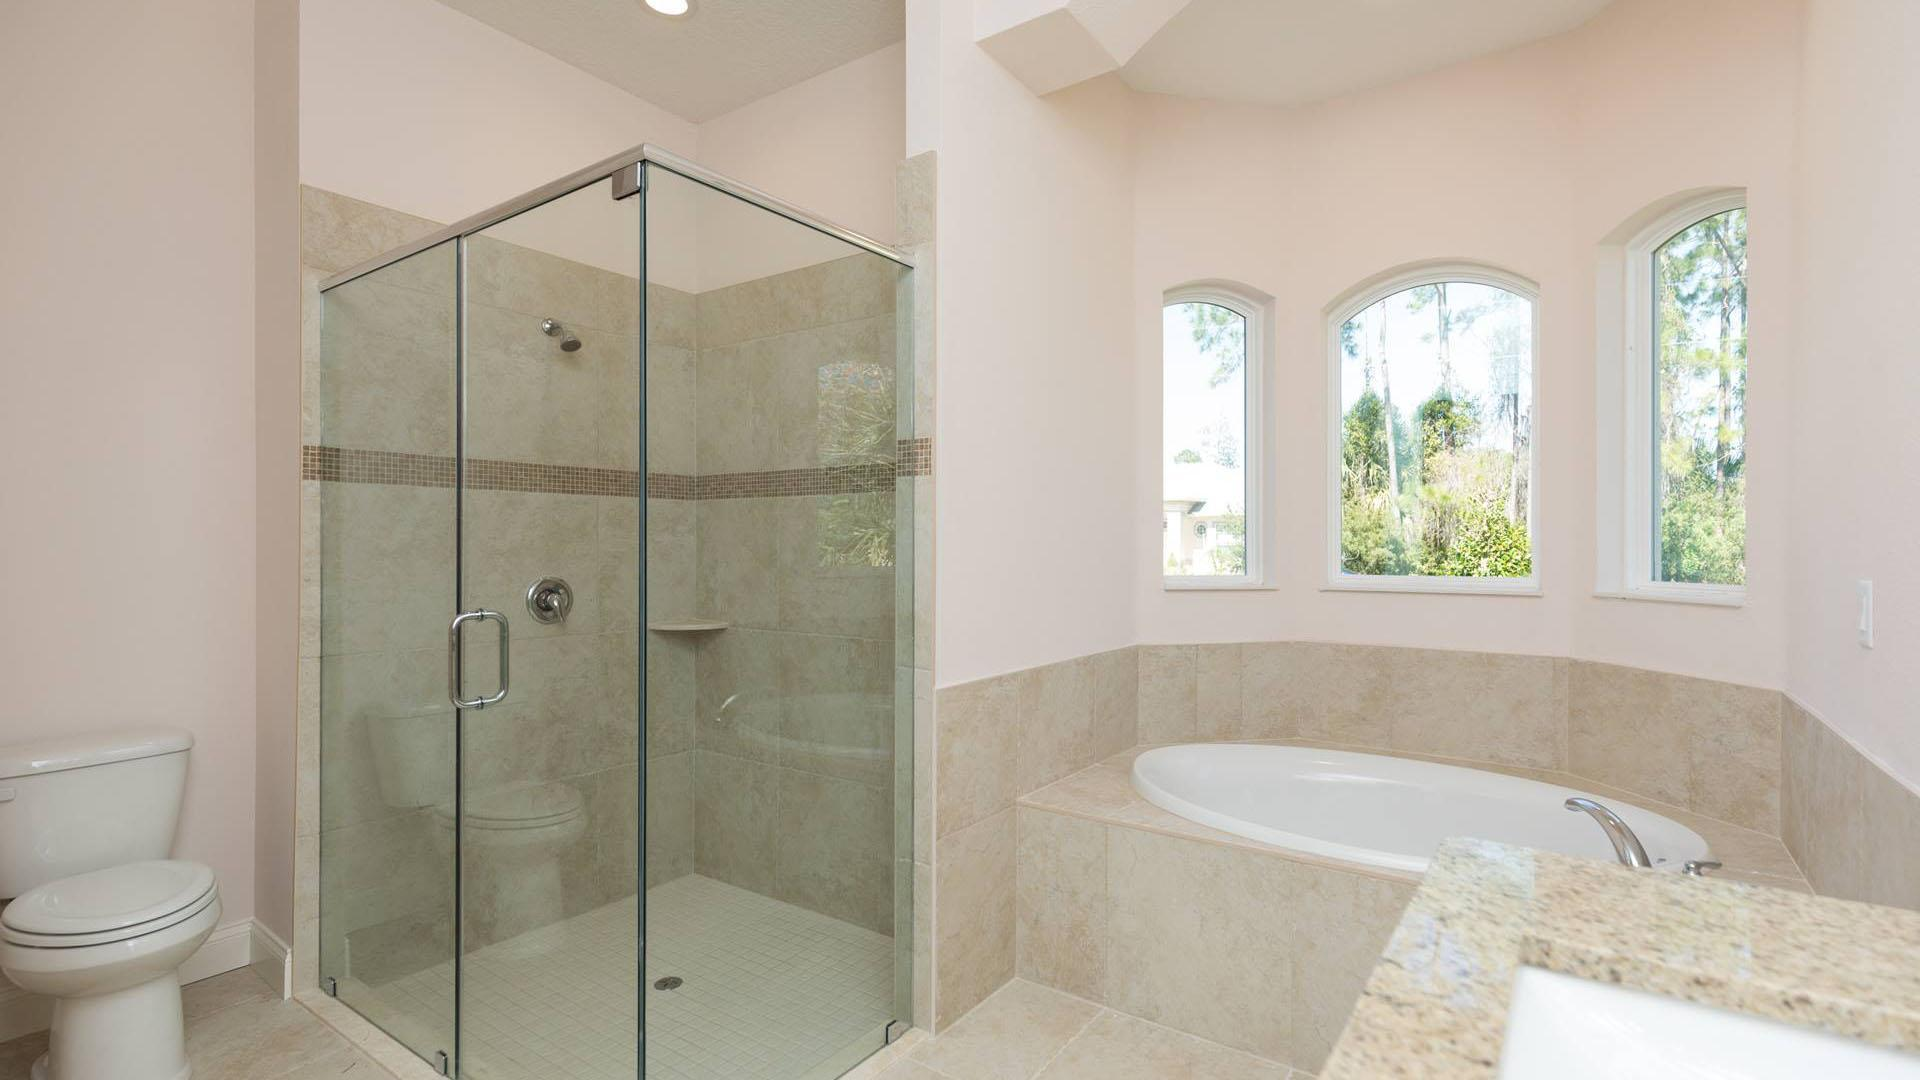 Bathroom featured in the LUCY. Certified Green home By Florida Green Construction